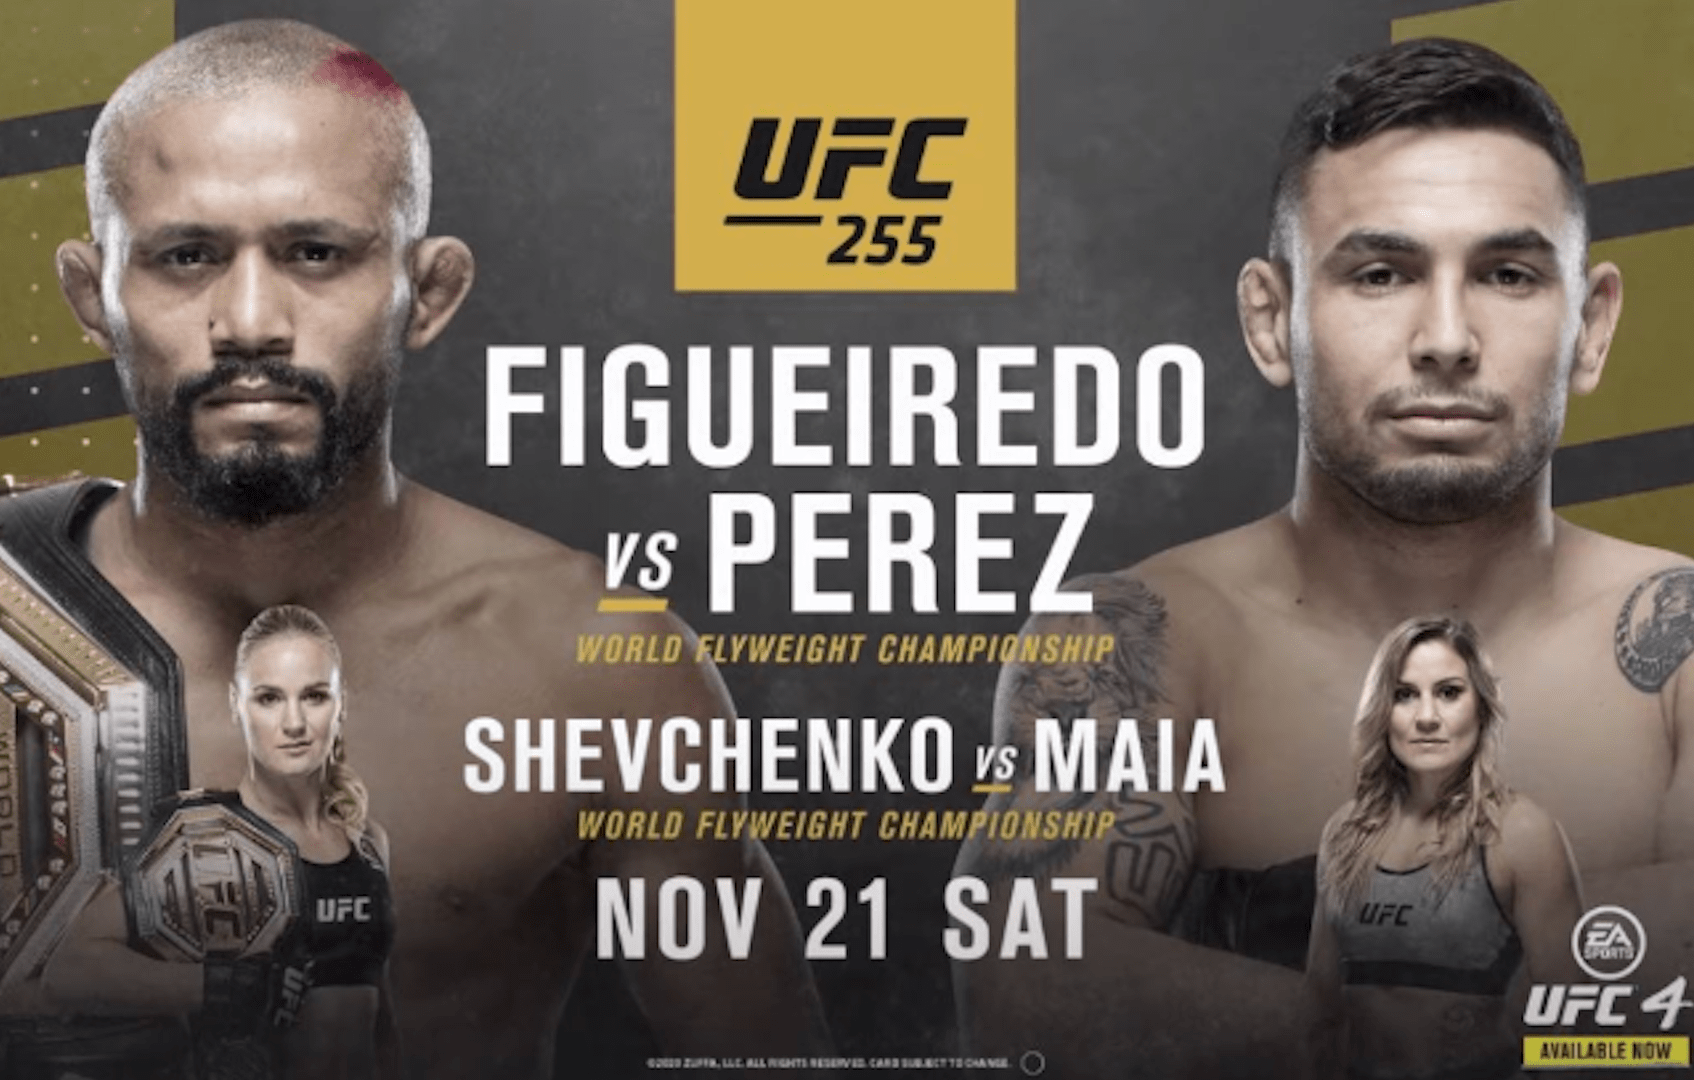 Ufc 255 Figueiredo Vs Perez Results And Post Fight Videos Apmma